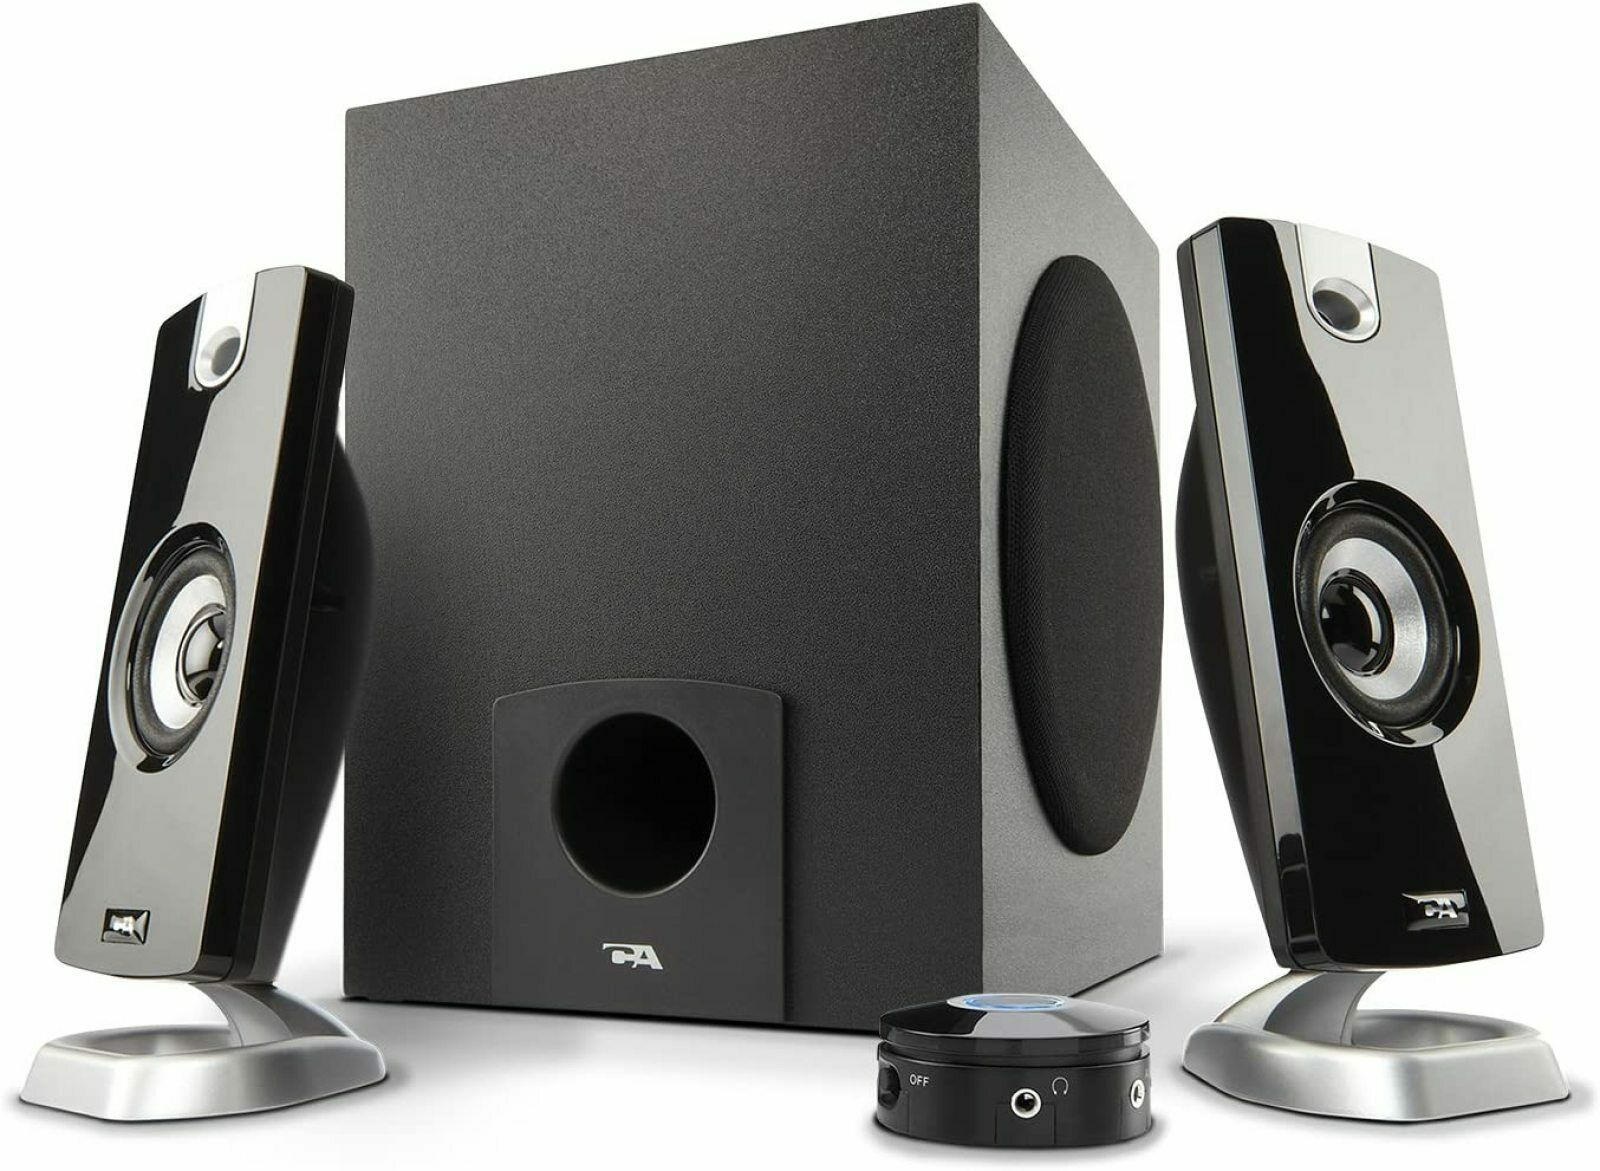 Computer Speaker System Subwoofer Laptop Desktop Gaming Surround Sound PC. Buy it now for 34.81